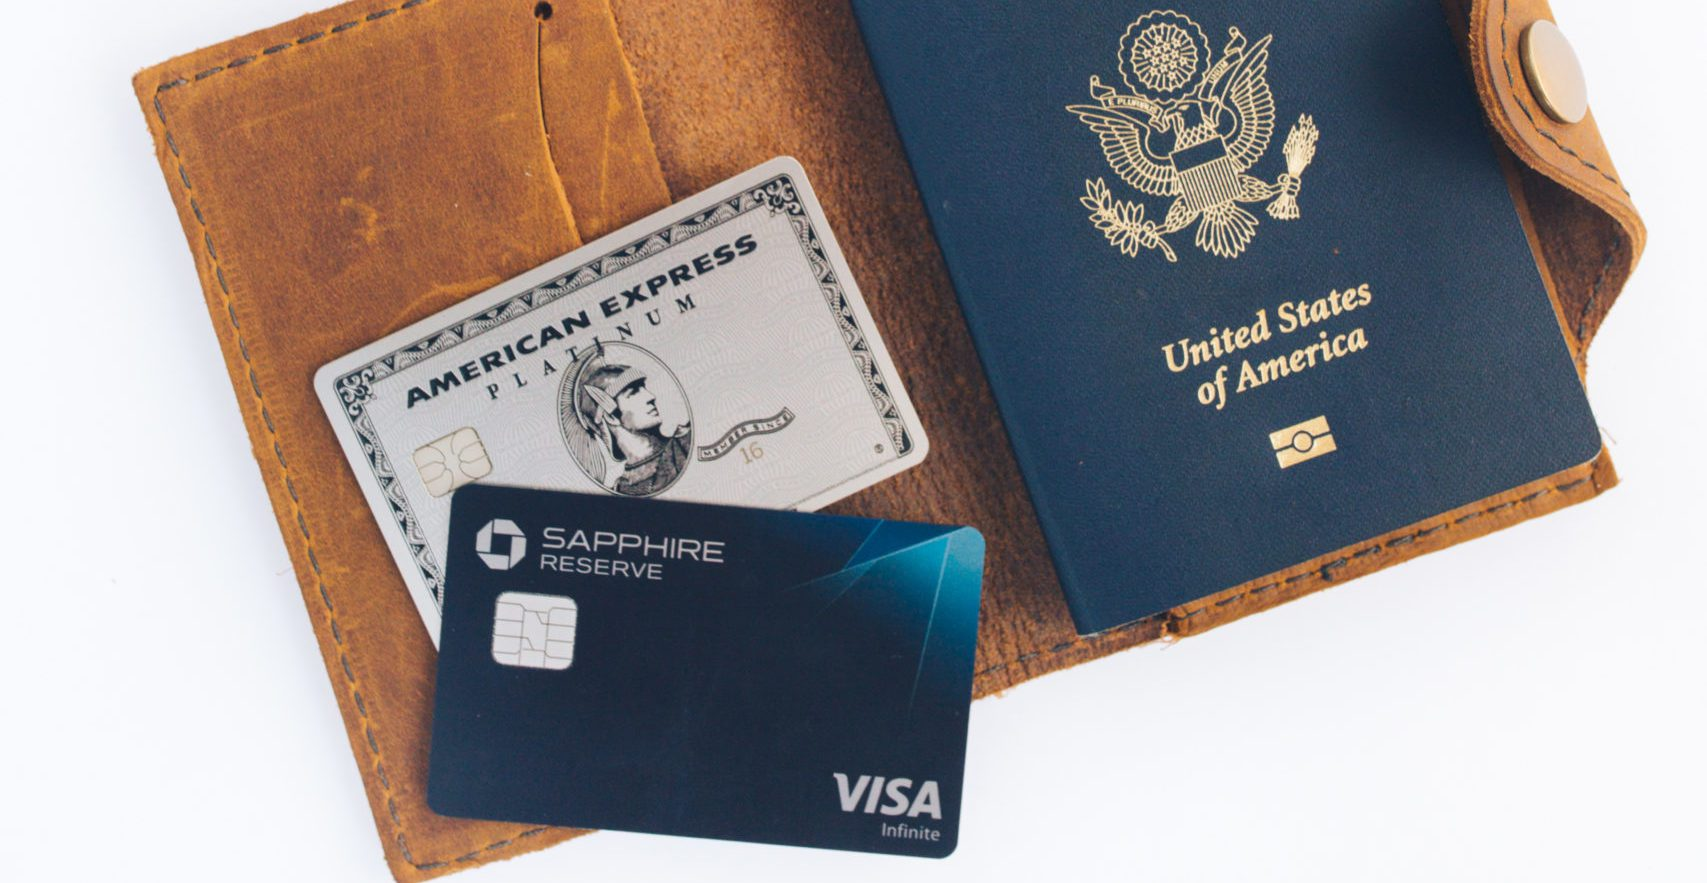 Amex vs Chase? Why I Think Amex Reigns Supreme for Credit Card Points